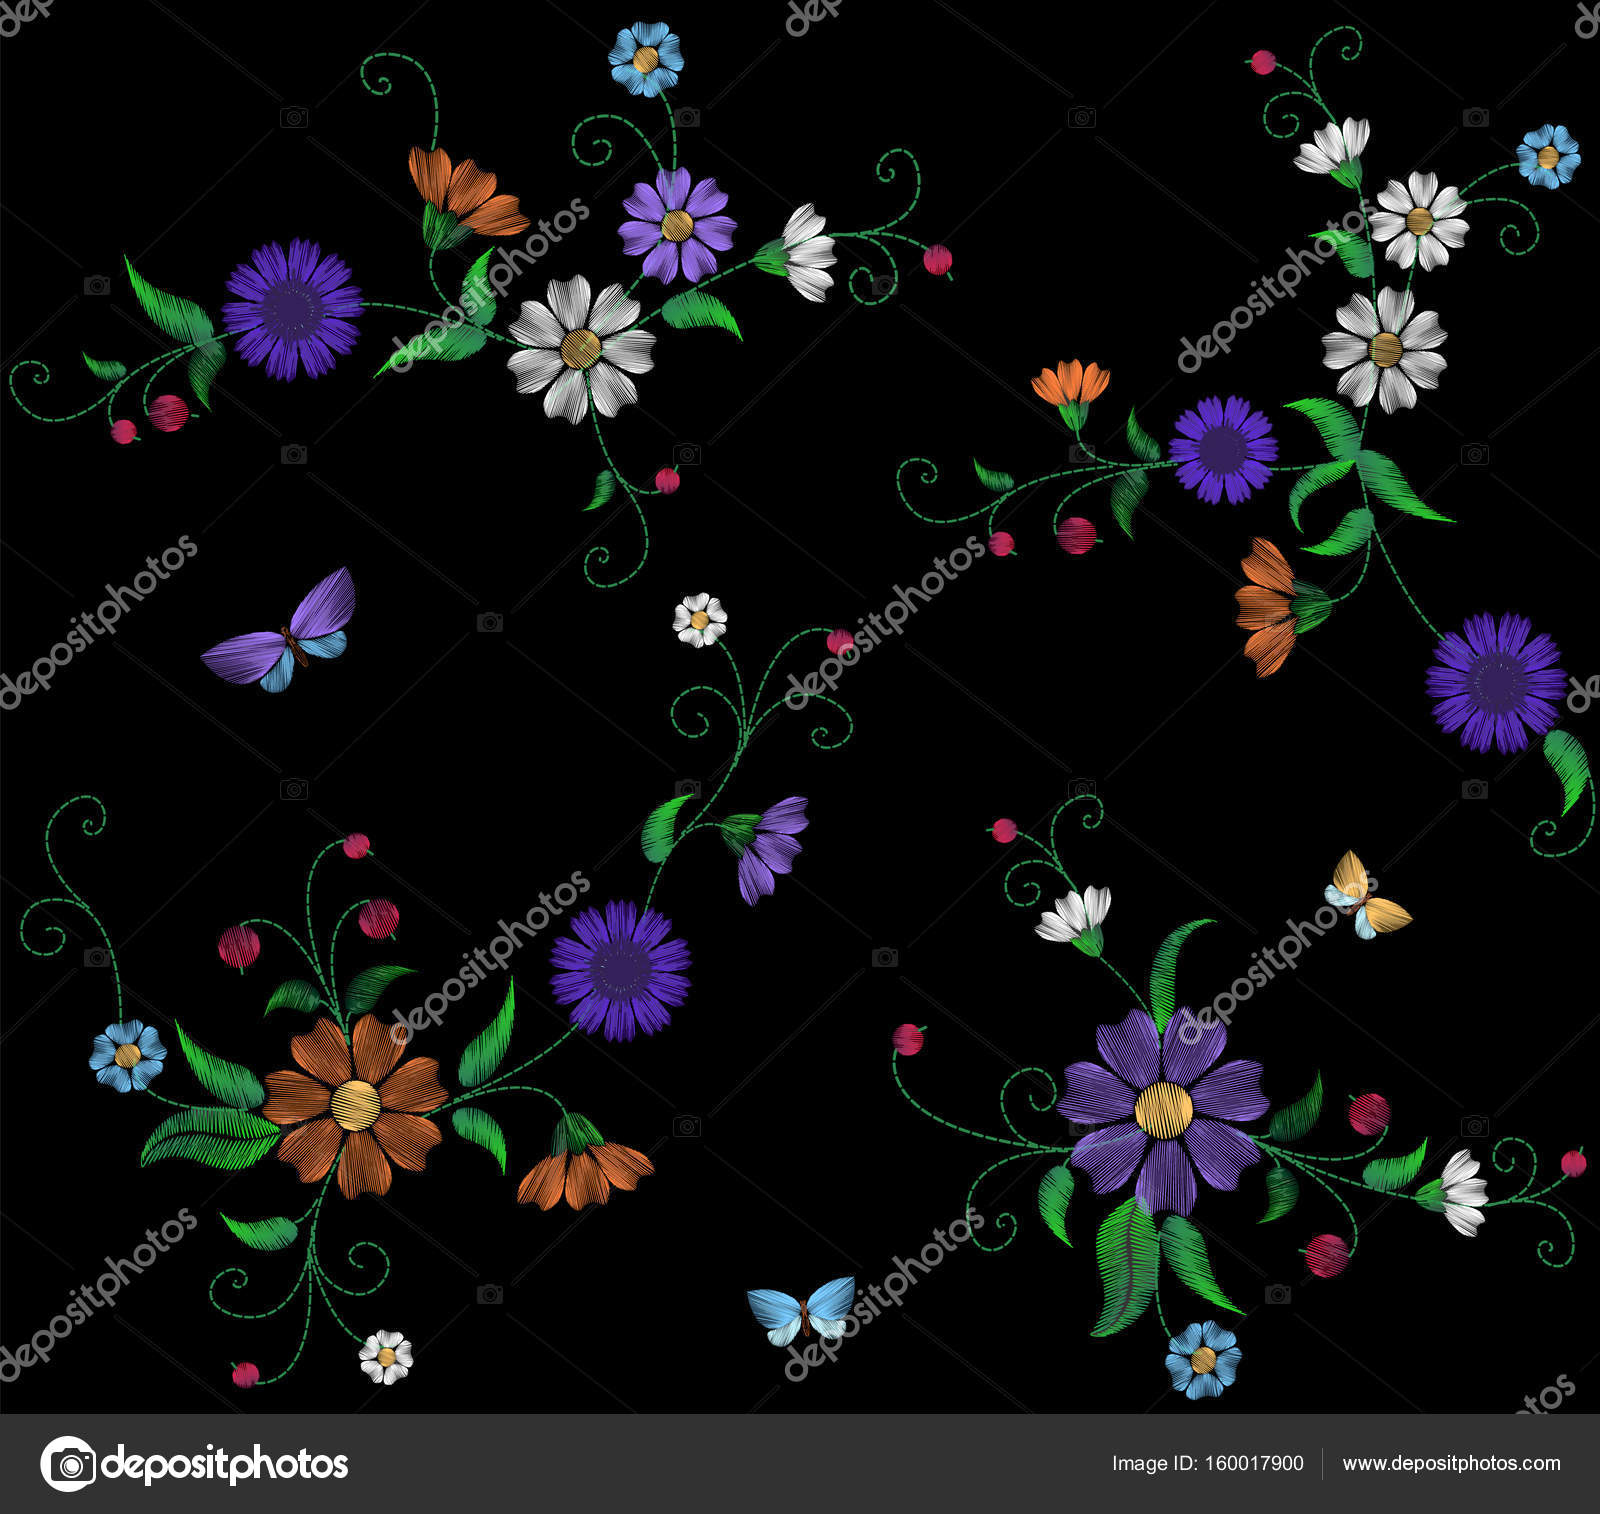 Floral Blue Violet Daisy Embroidery Seamless Pattern Vintage Victorian Flower Ornament Fashion Textile Decoration Stitch Texture Vector Illustration Art